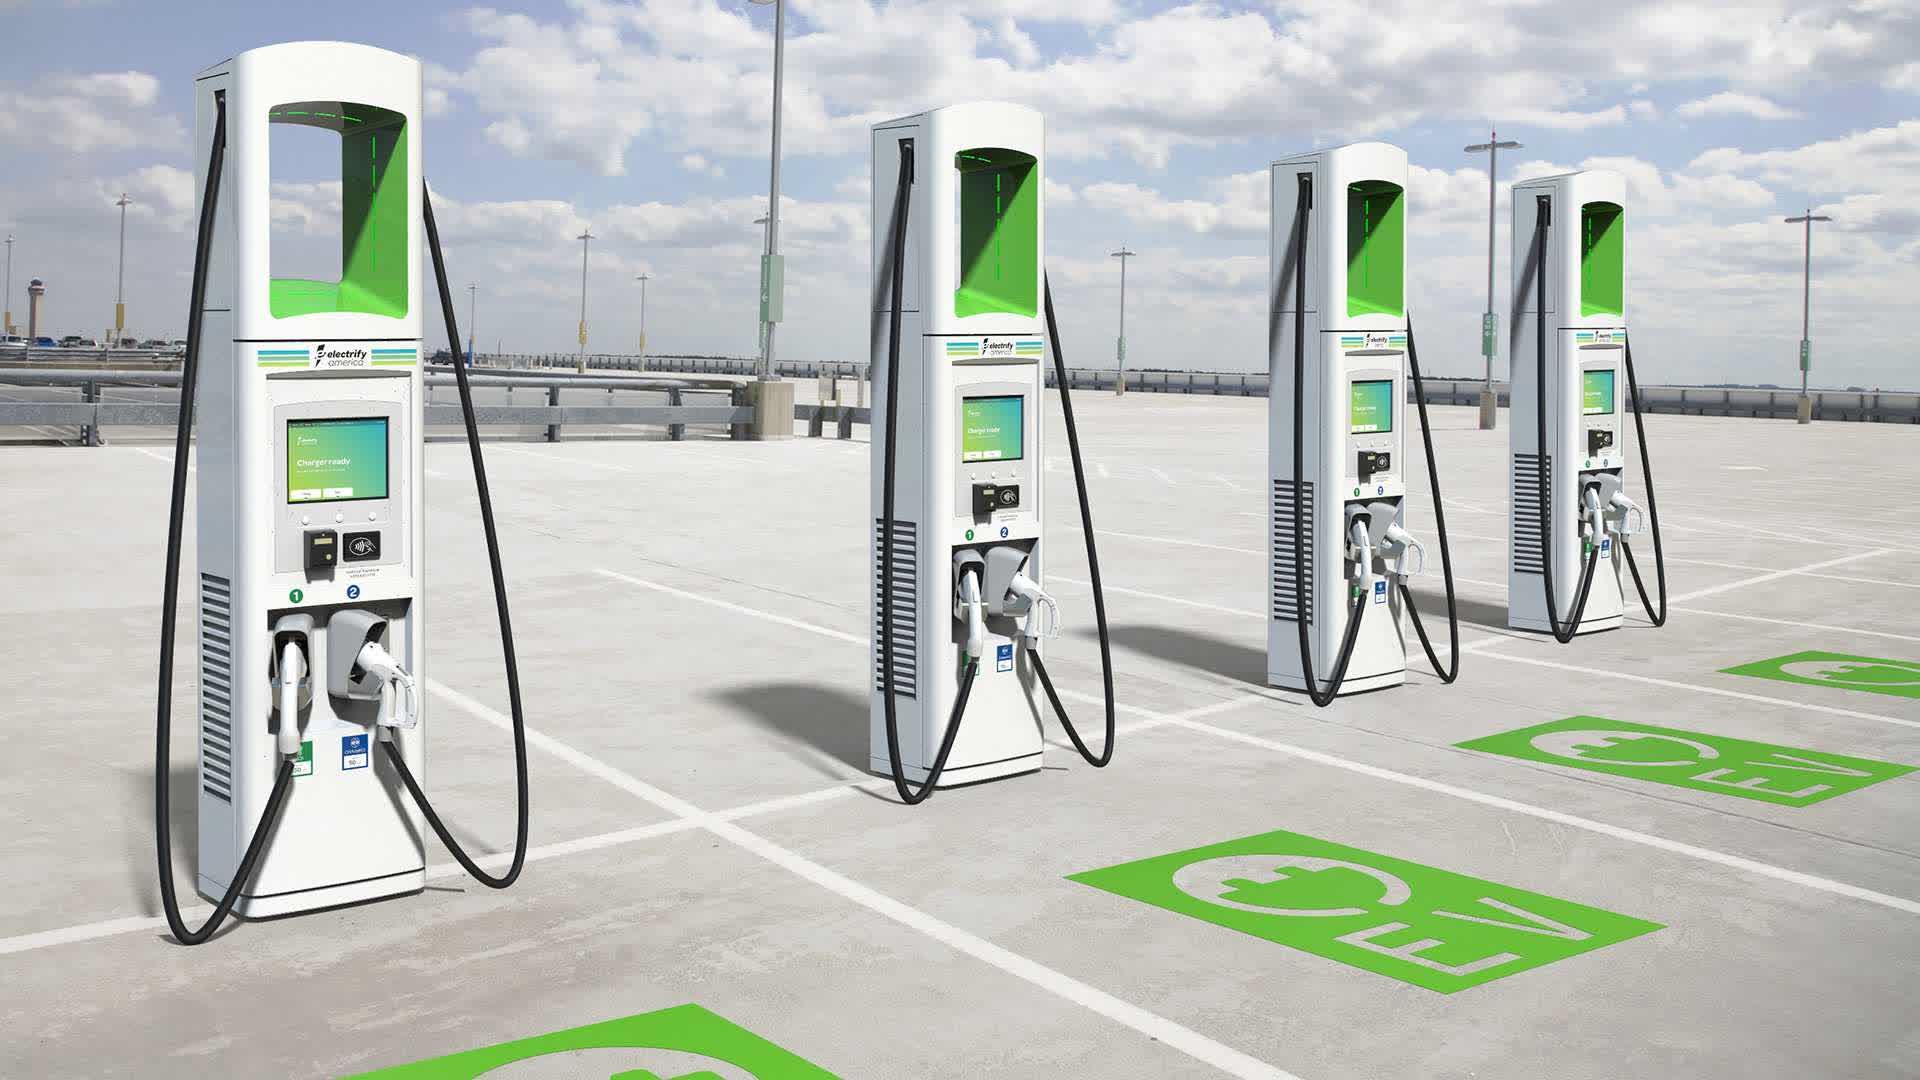 Electrify America's Boost Plan will 'more than double' its EV charging network's footprint by 2026